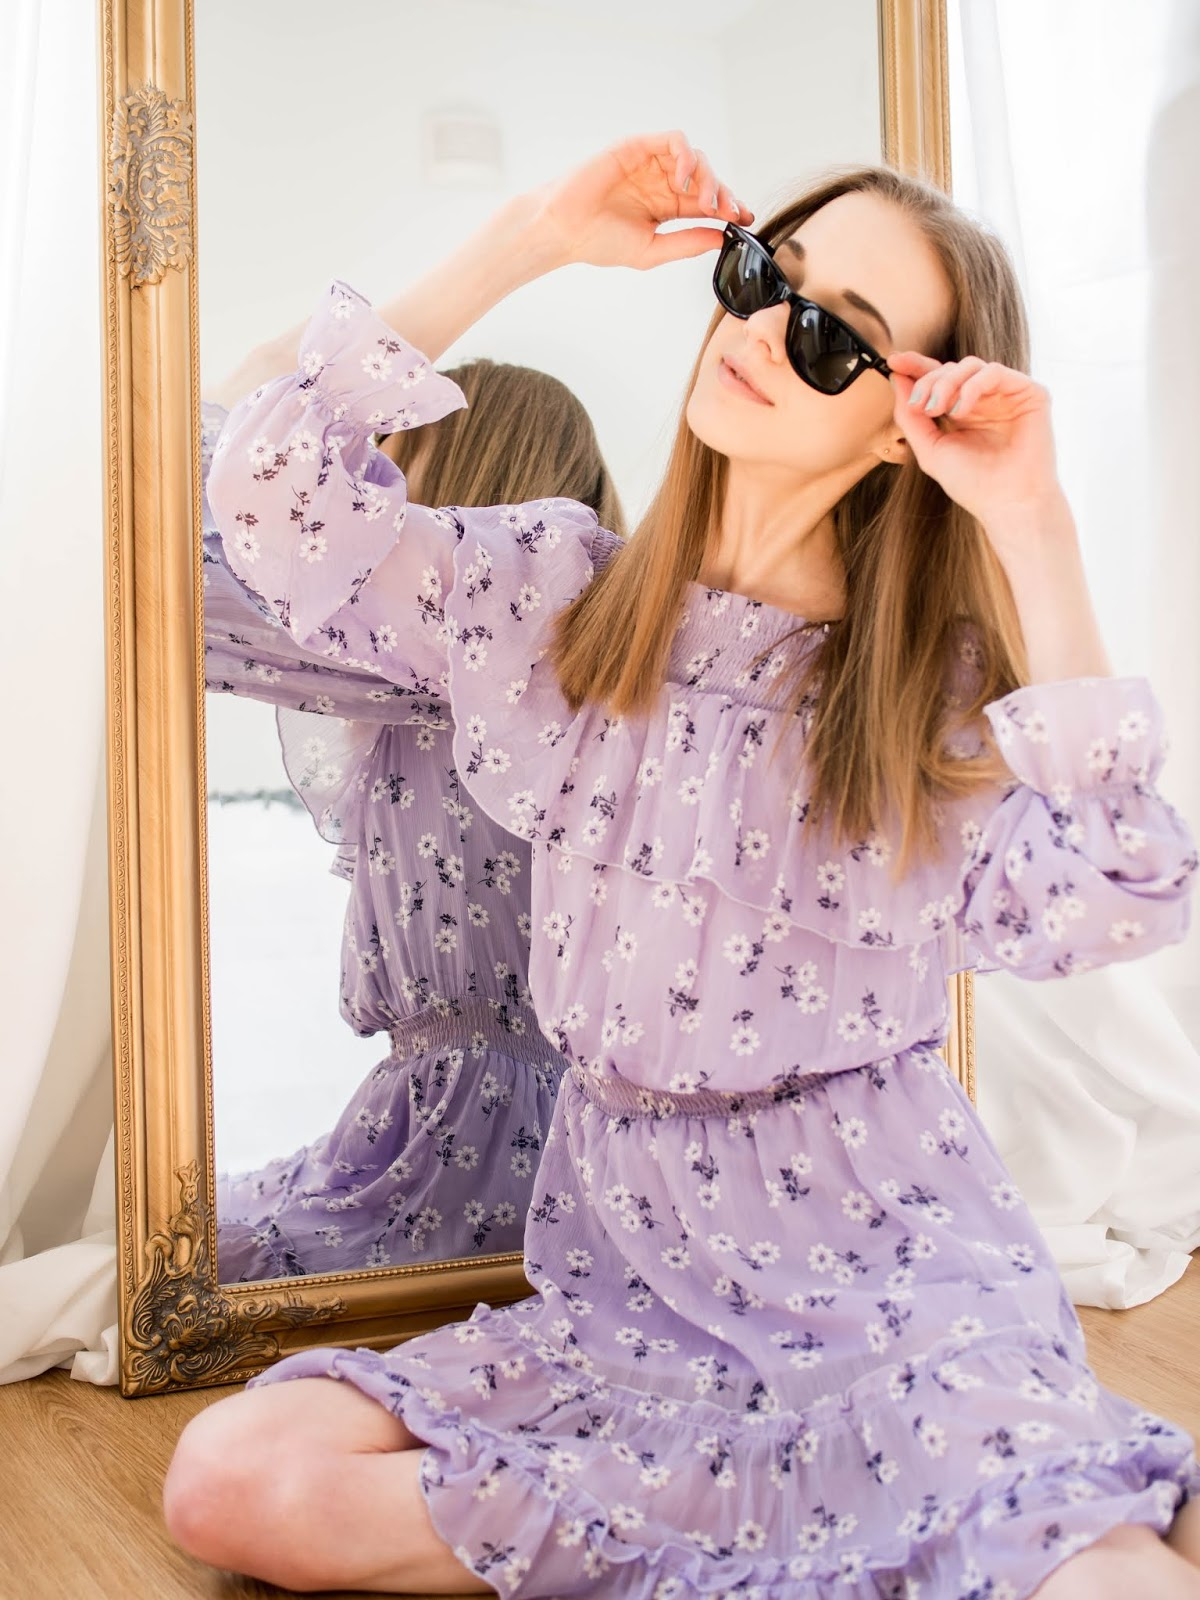 Woman in a lilac summer dress wearing black Ray-Ban Wayfarer sunglasses - Violetti kukkamekko ja Ray-Ban Wayfarer aurinkolasit